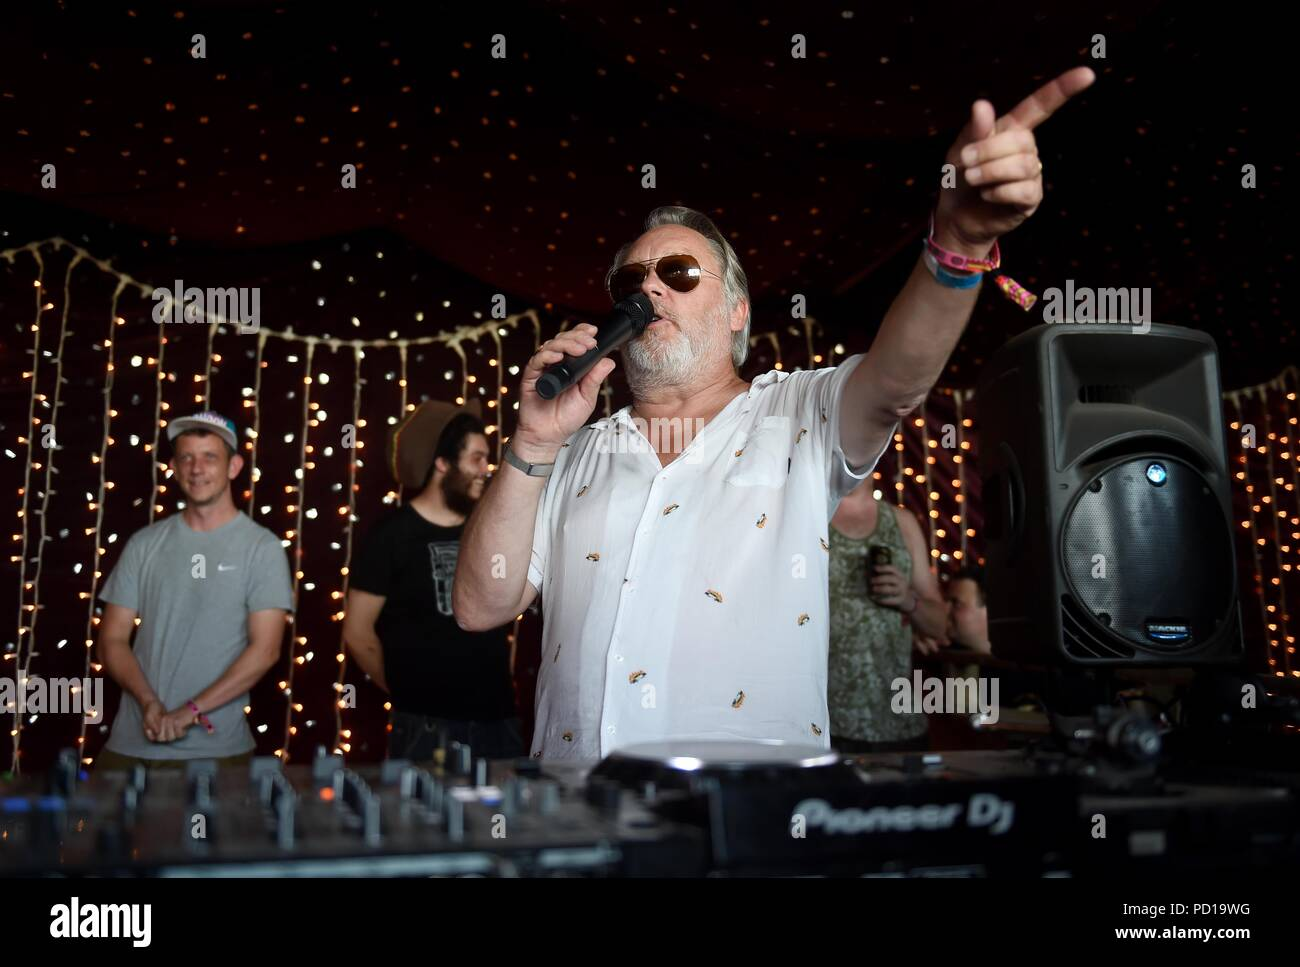 Vic Reeves performs his Reggae Set at the festival at Bestival, Dorset, UK Credit: Finnbarr Webster/Alamy Live News - Stock Image